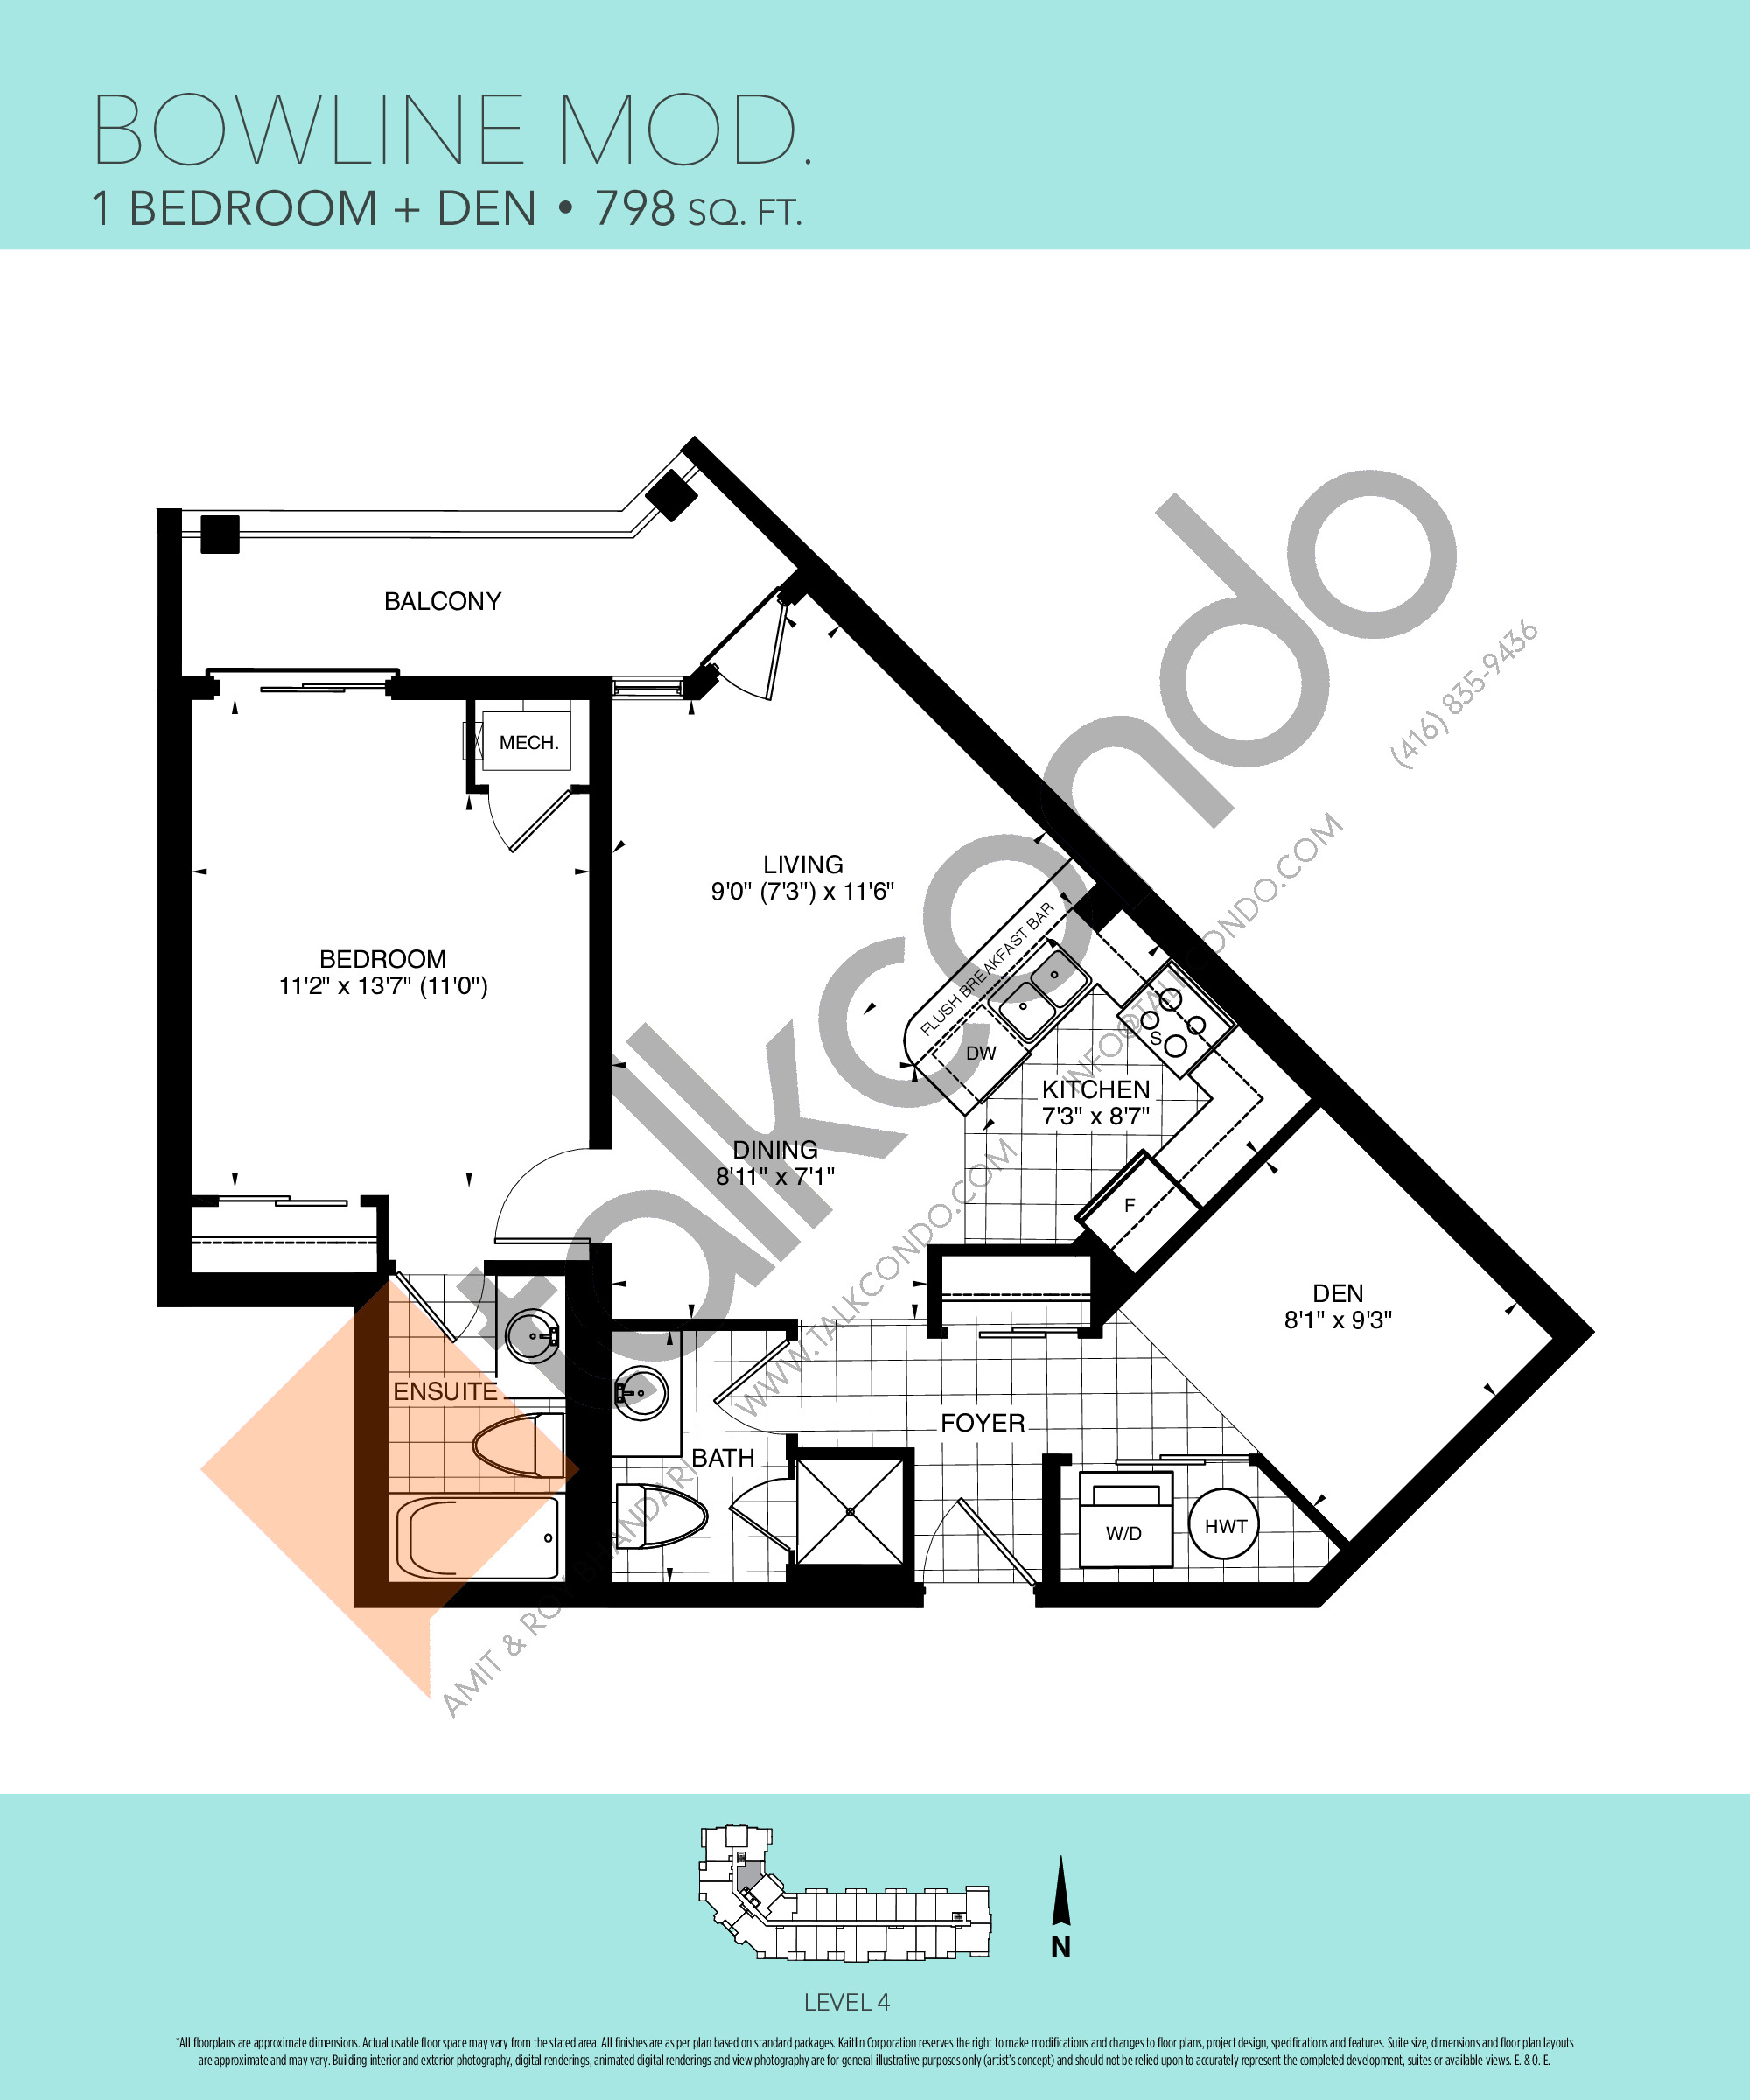 Bowline Mod Floor Plan at Harbourview Grand Condos - 798 sq.ft